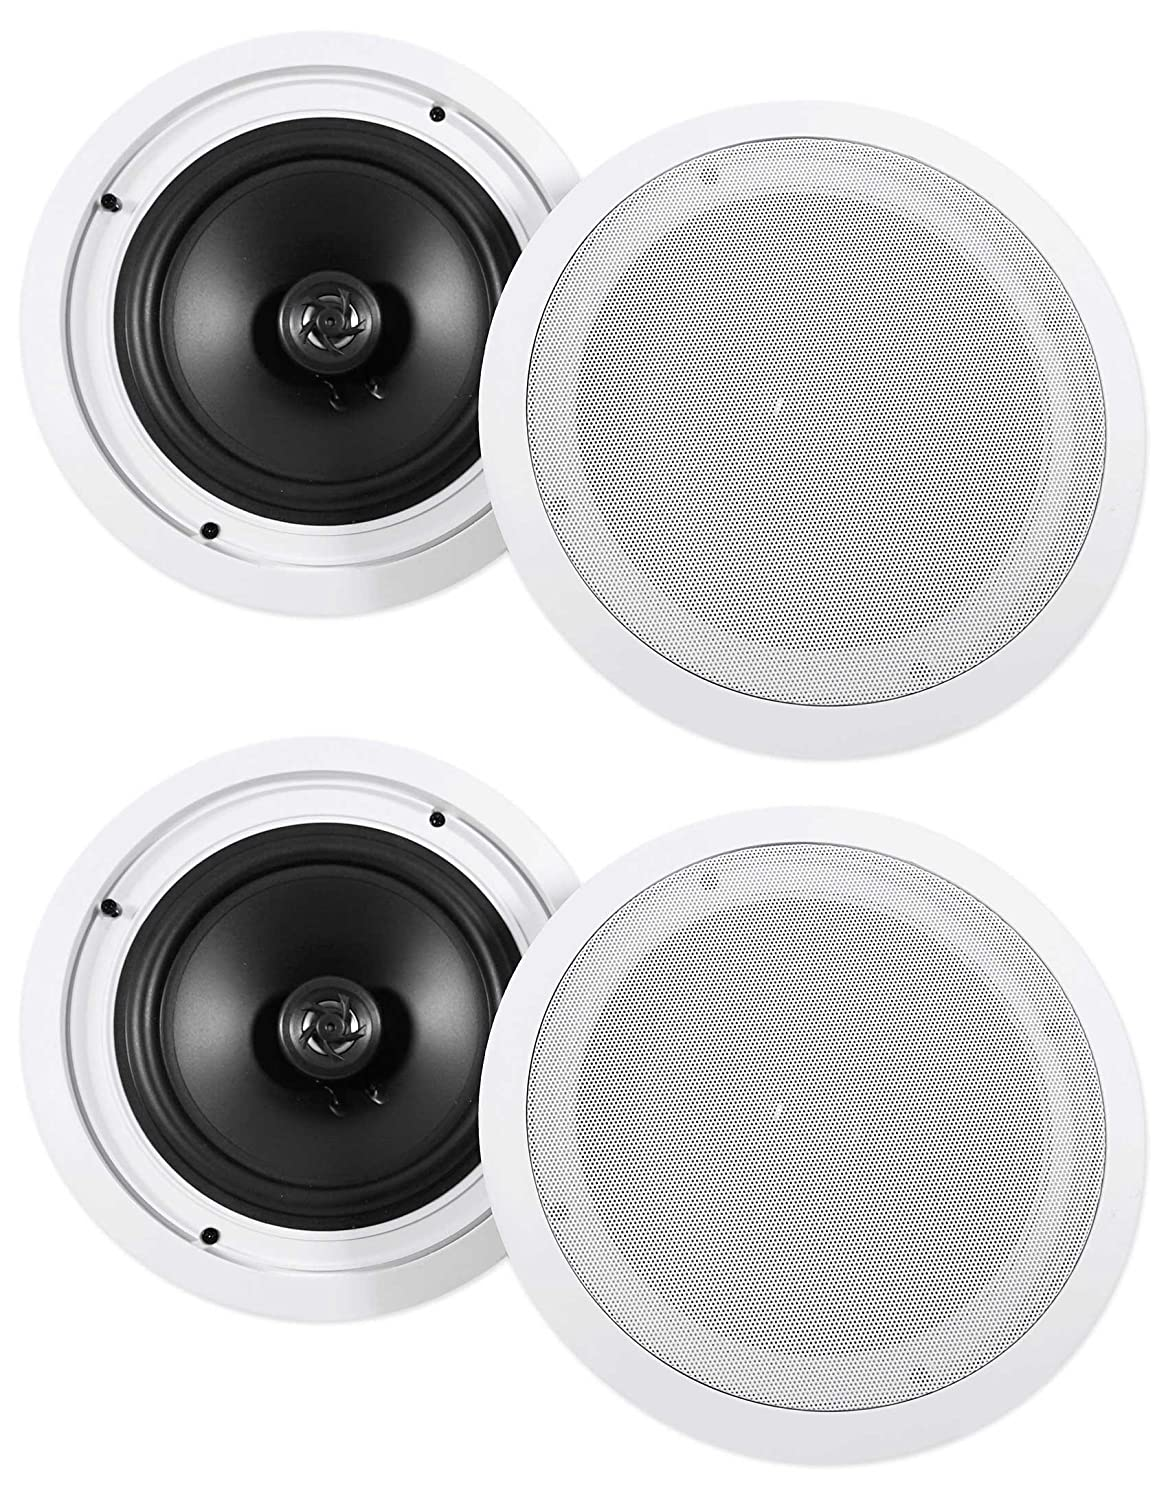 Cool 4 Rockville Hc85 8 Inch 700 Watt In Ceiling Home Theater Speakers 8 Ohm Interior Design Ideas Helimdqseriescom